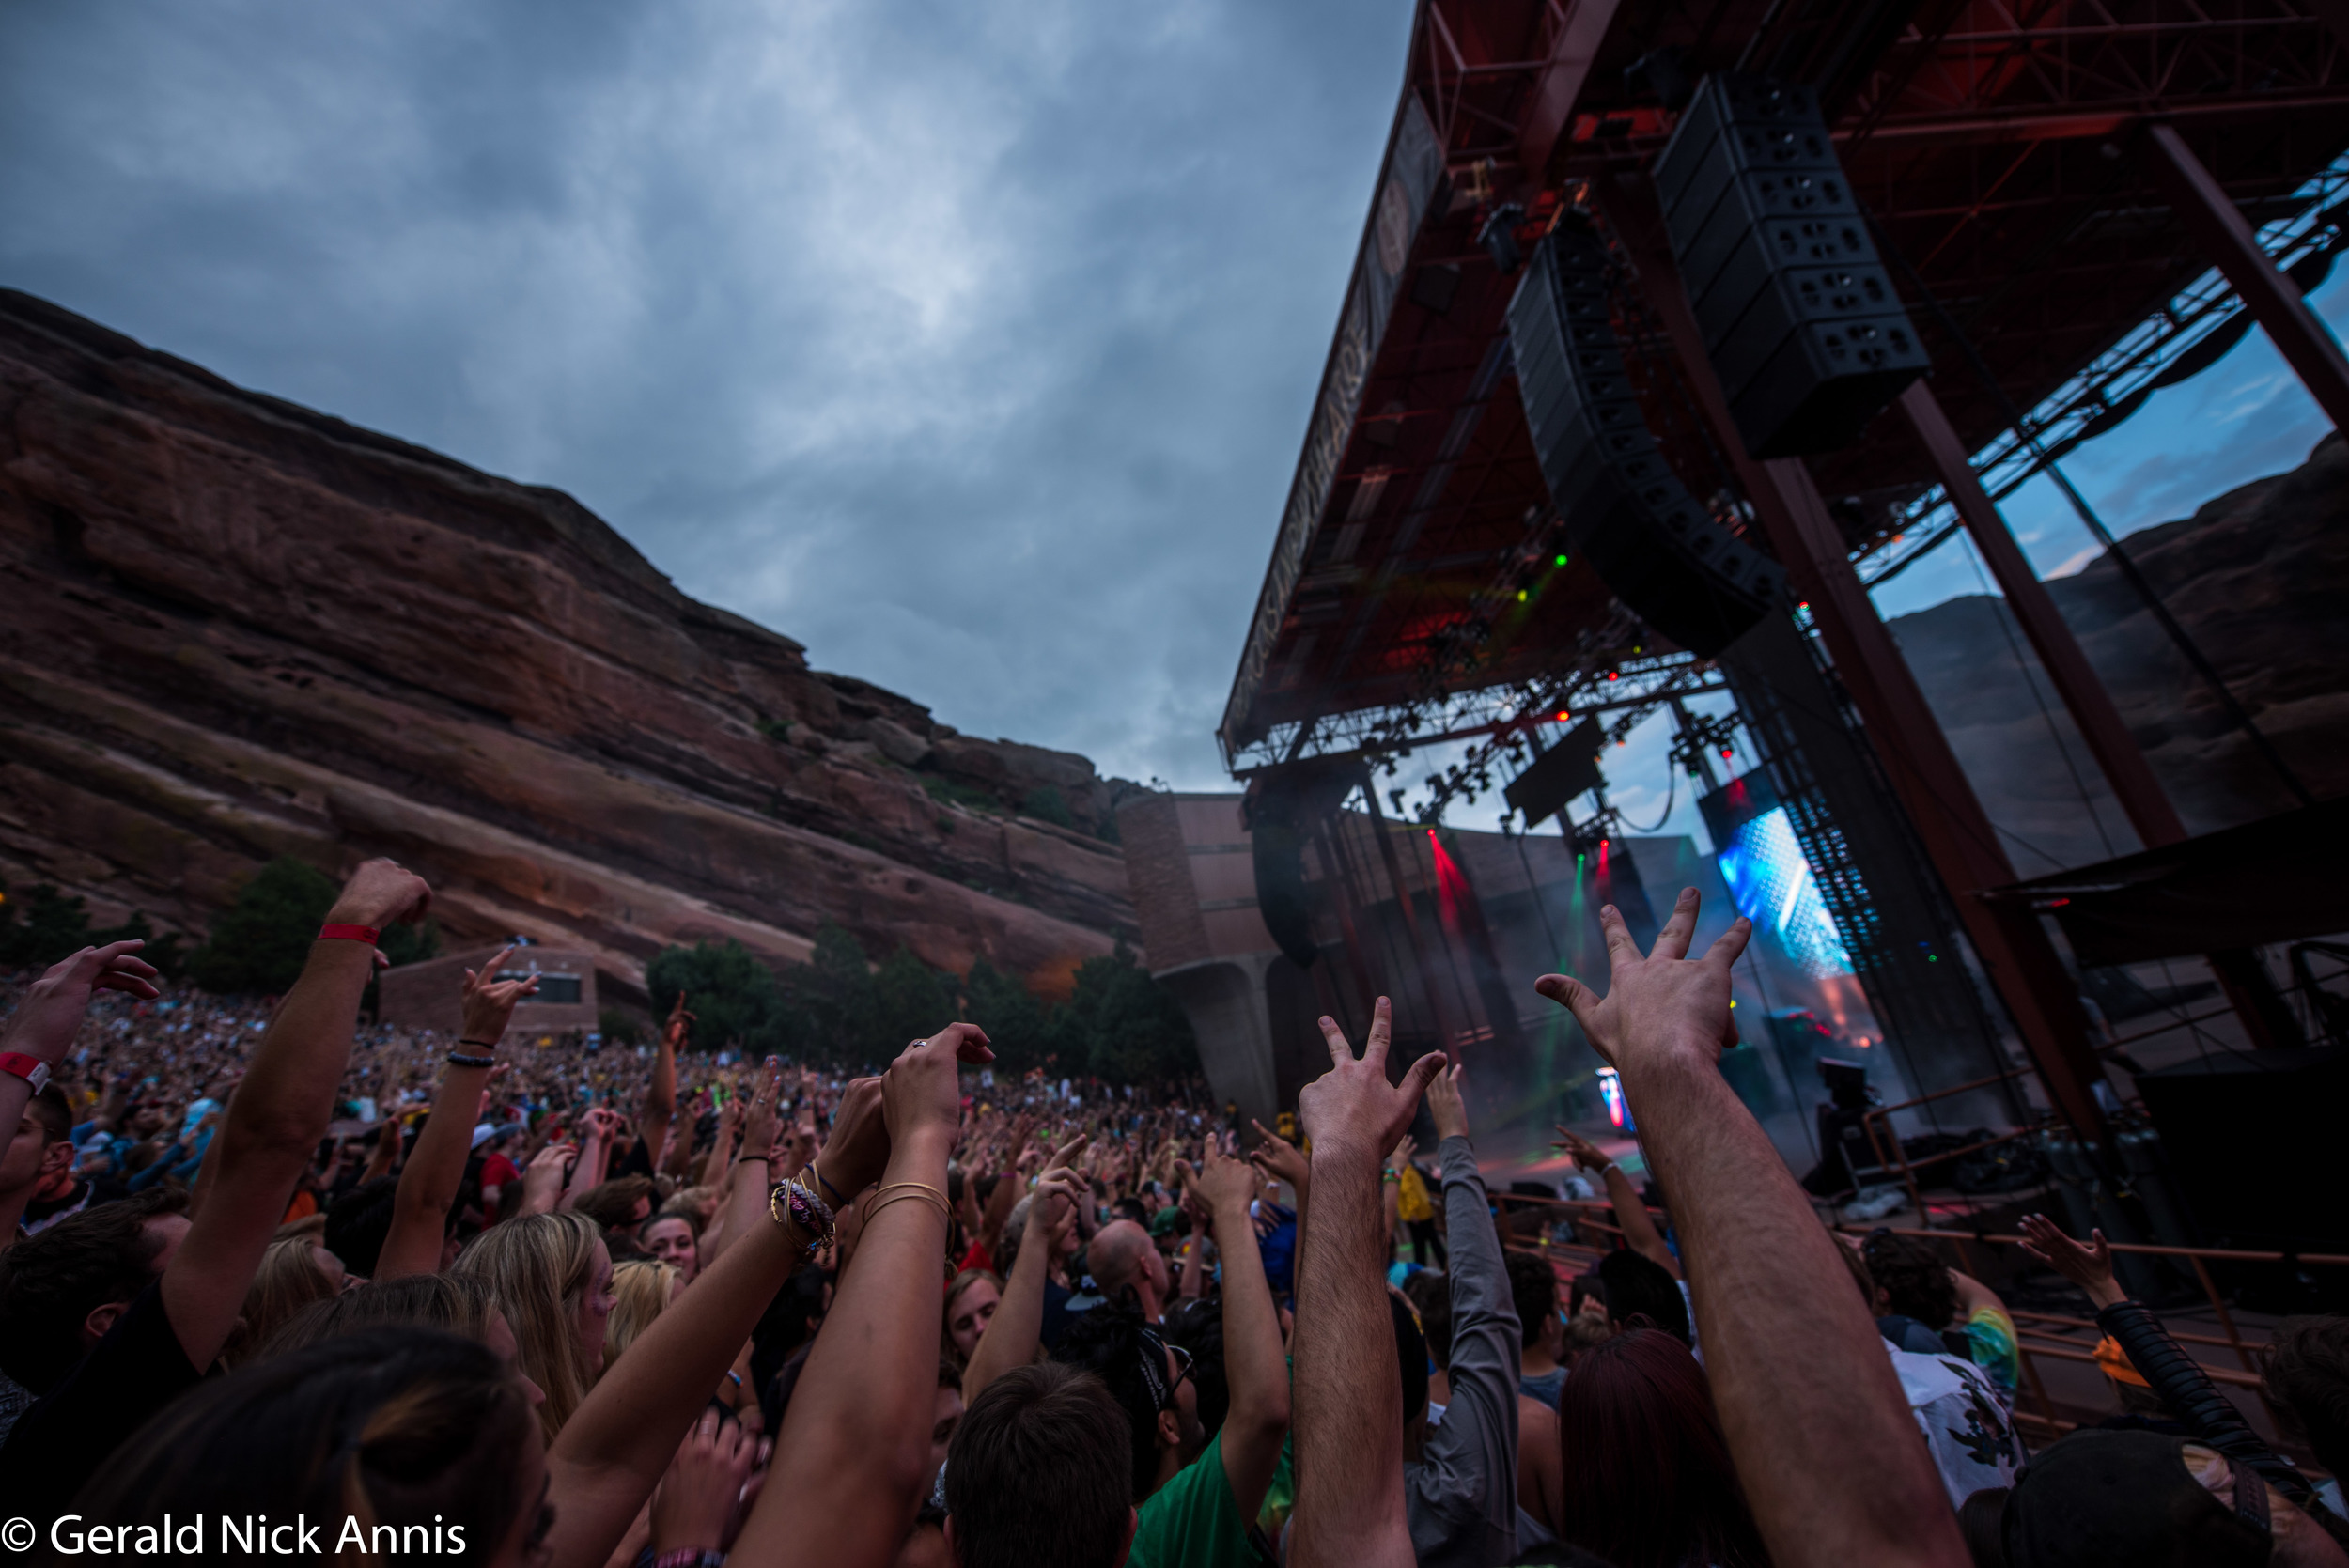 Annis_Nick.Deadrocks-21.jpg